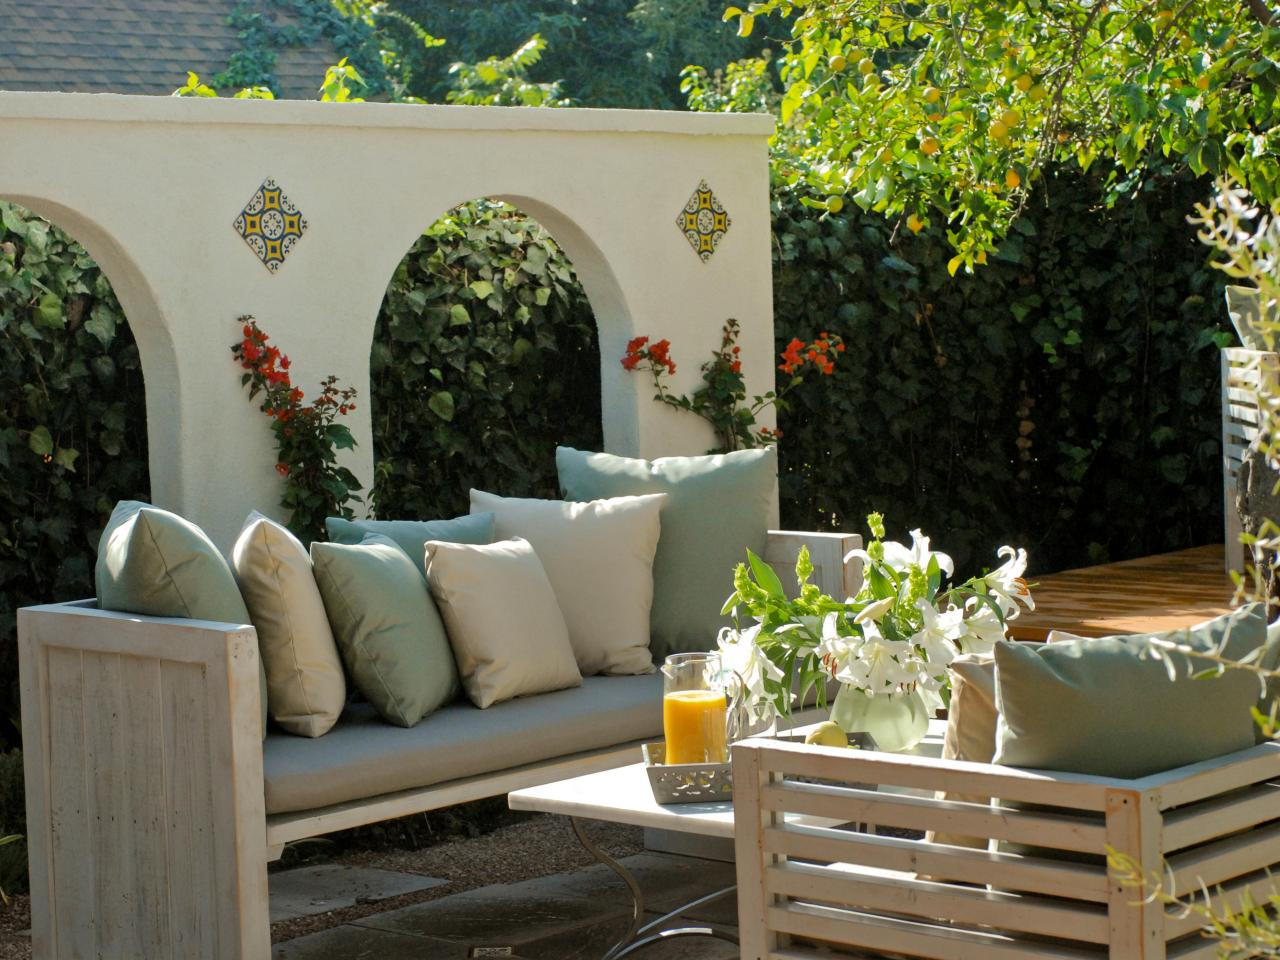 Patio ideas outdoor spaces patio ideas decks for Yard decorating ideas on a budget